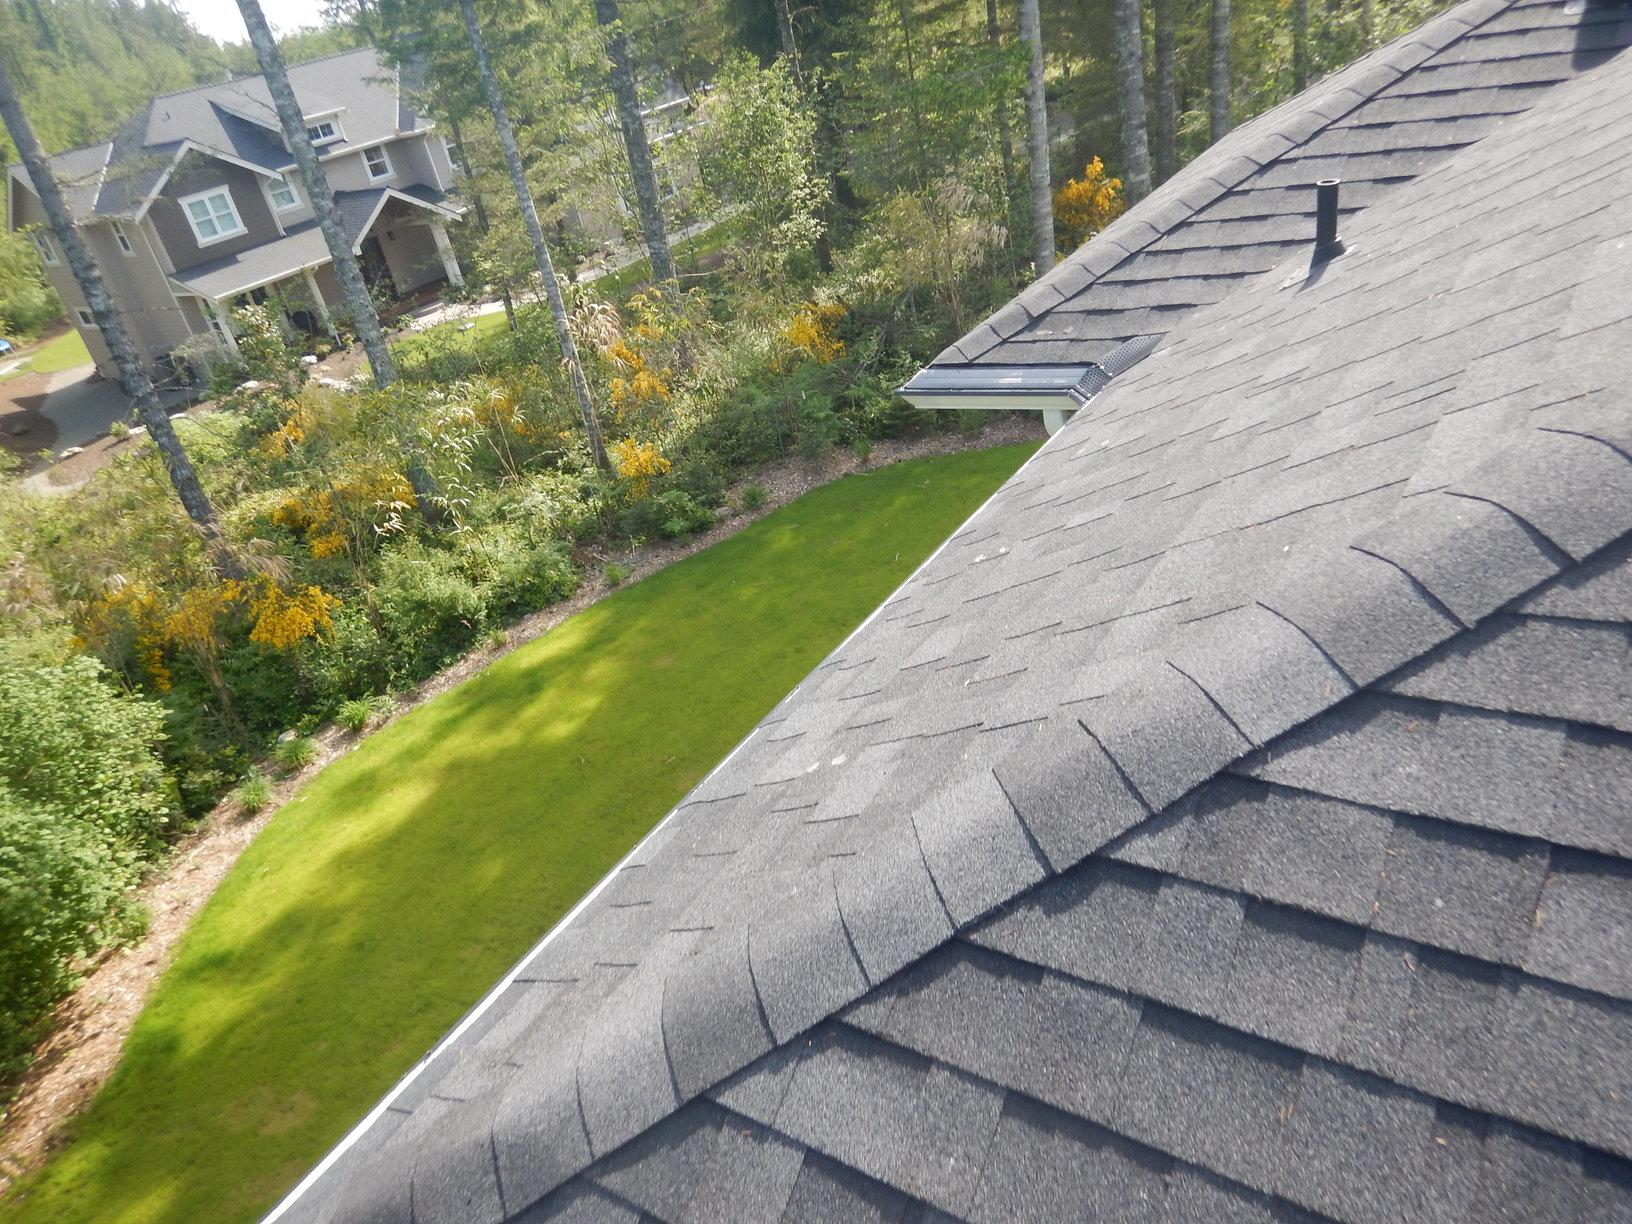 MasterShield is matched to the slope of the roof so needles will shed